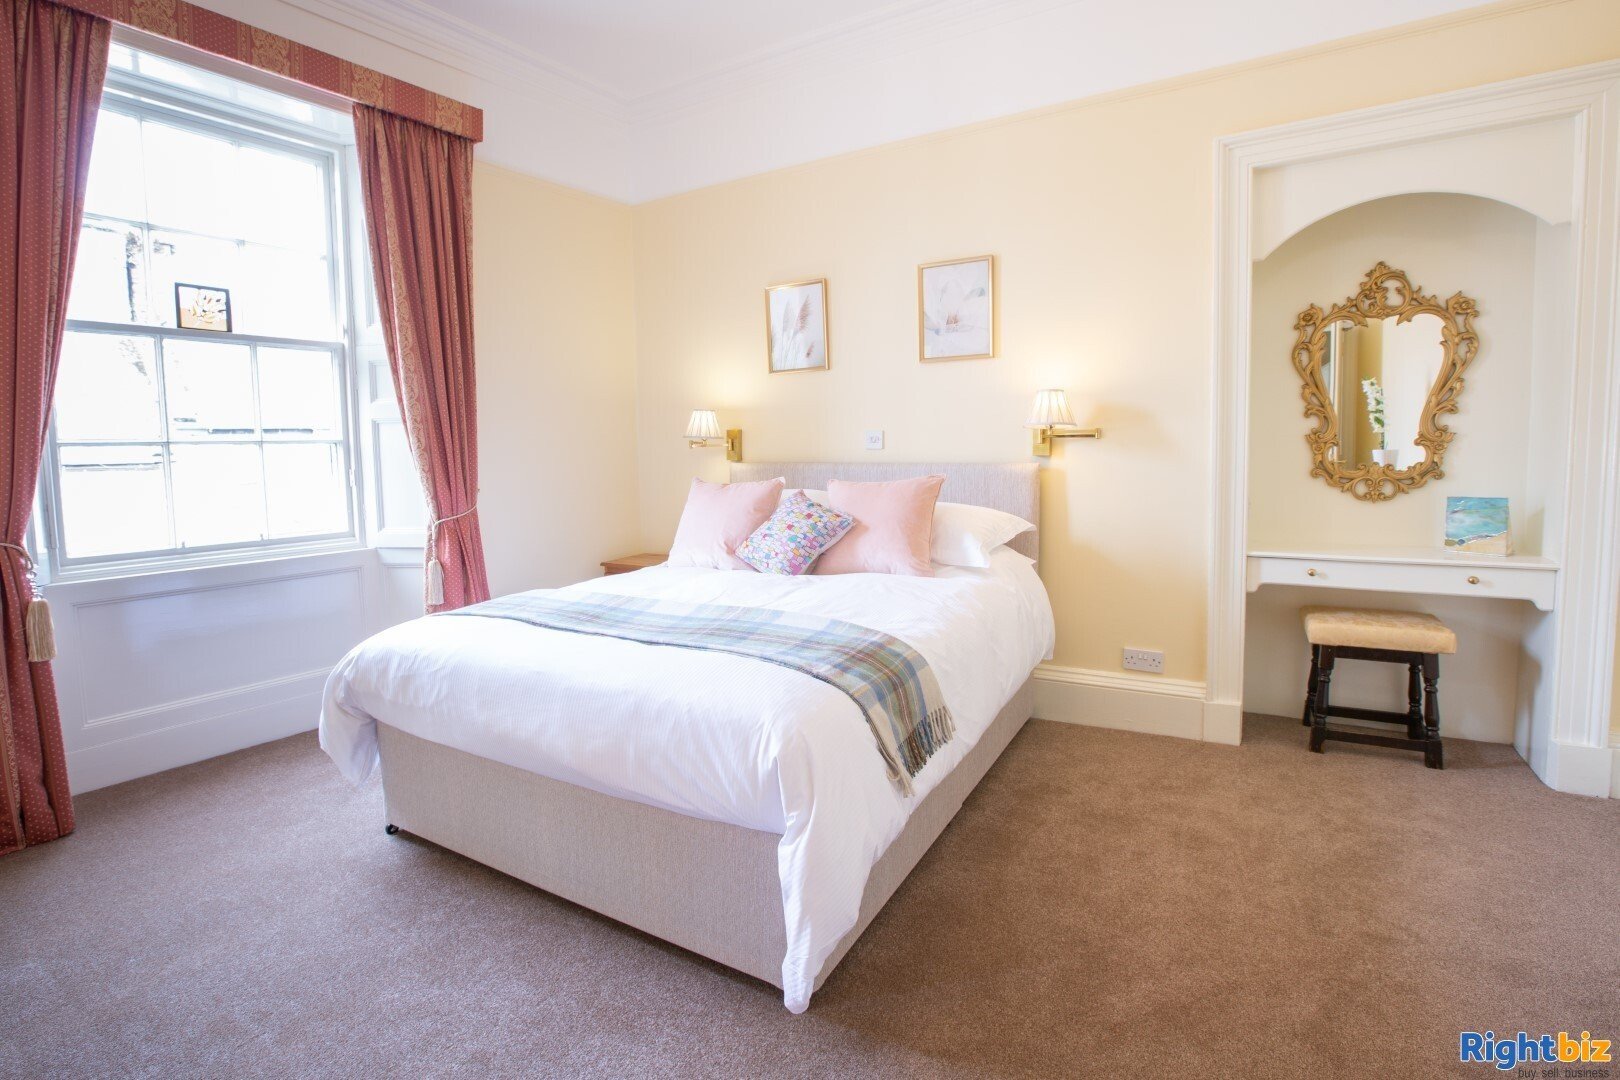 A stunning recently refurbished small Hotel with Restaurant in Kirkcudbright - Image 10